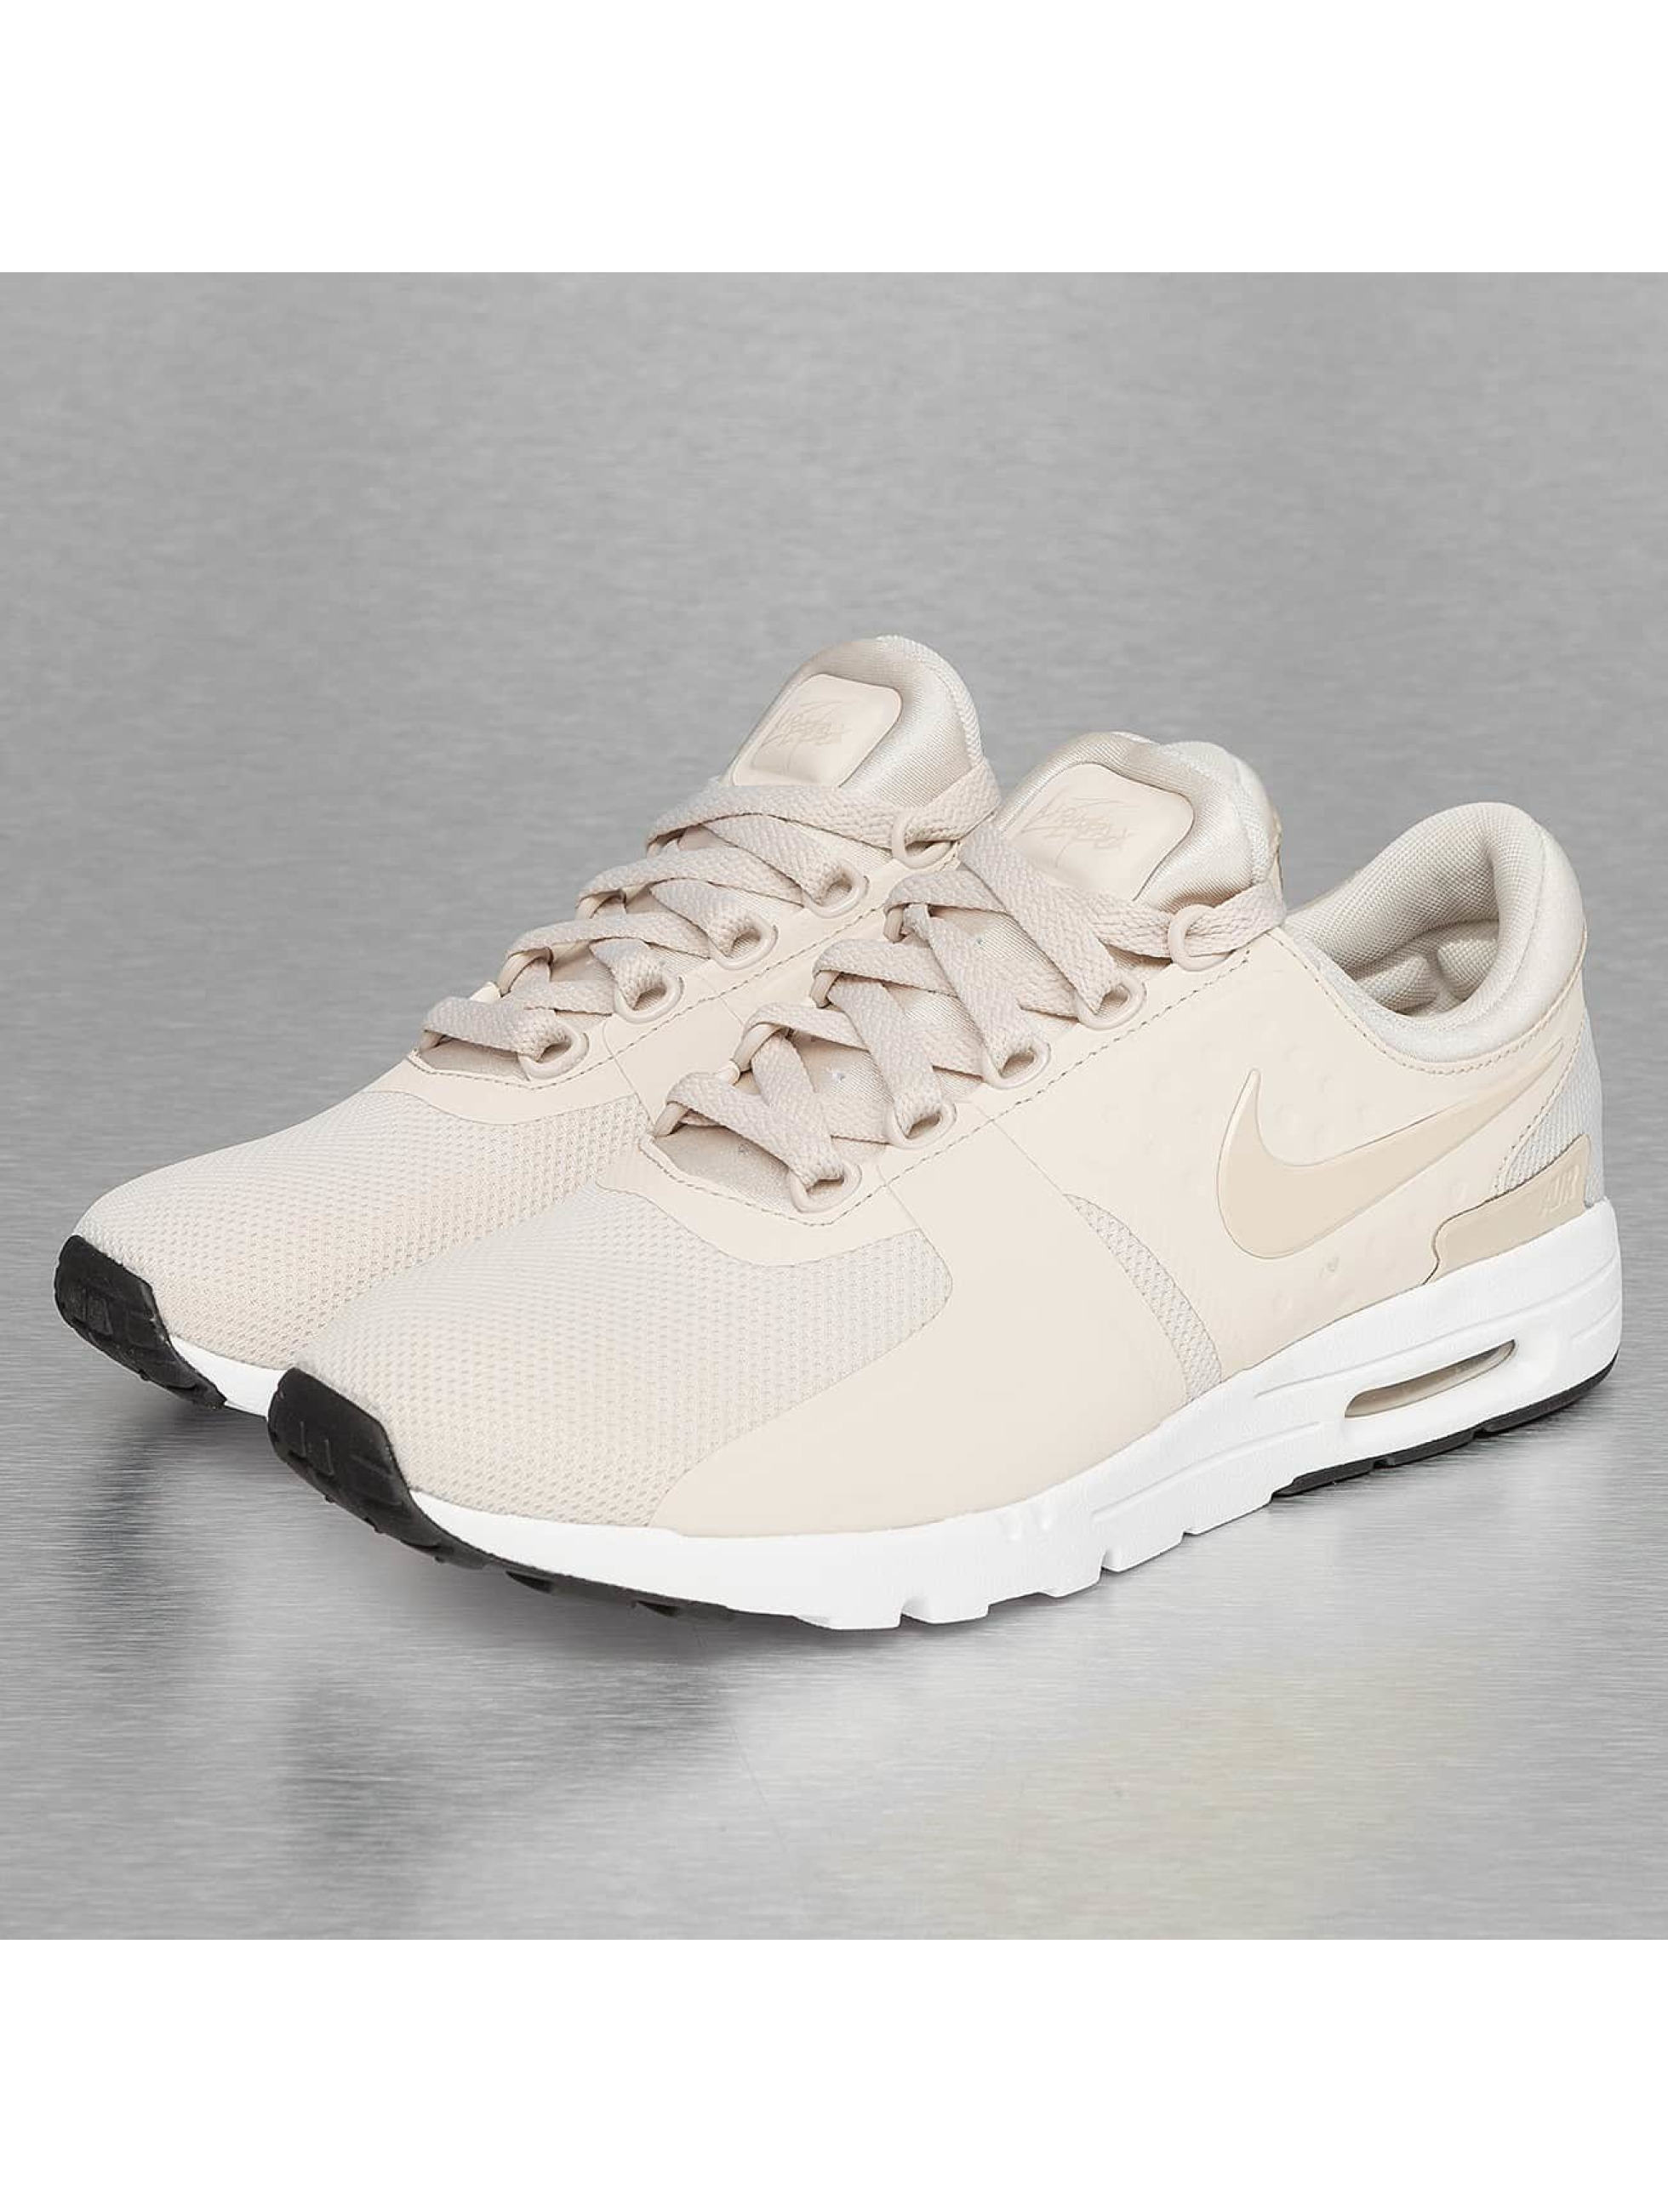 Sneaker Air Max Zero in beige